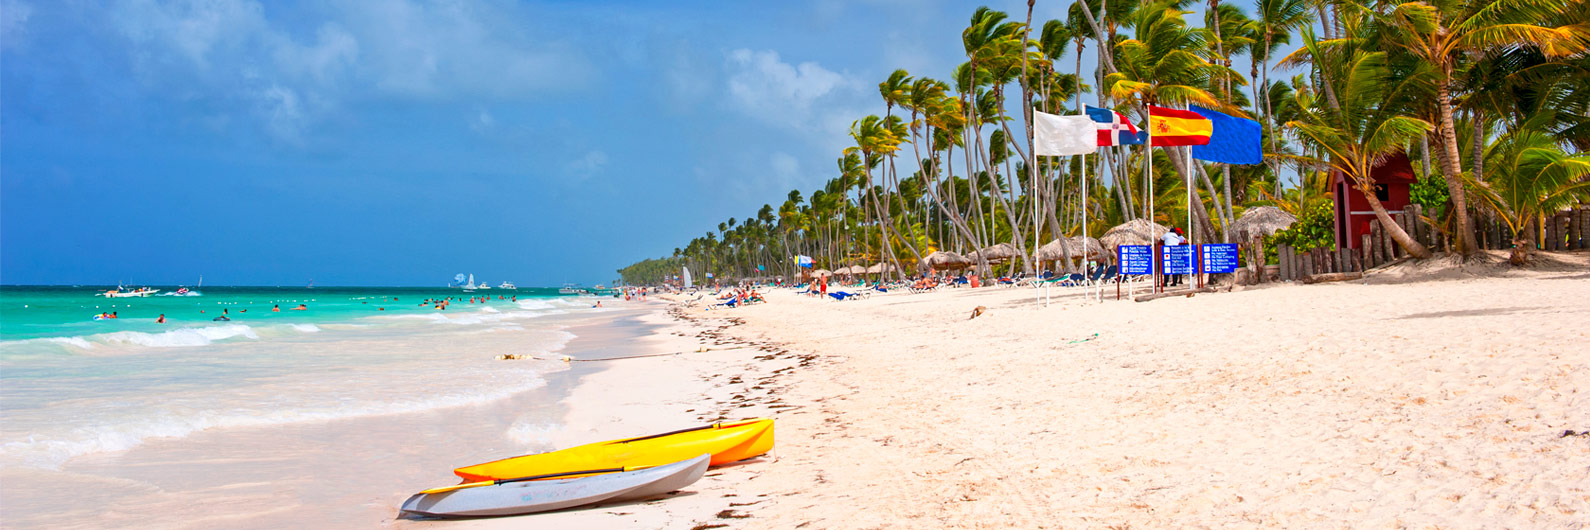 Travel from United States to Punta Cana | Frontier Airlines